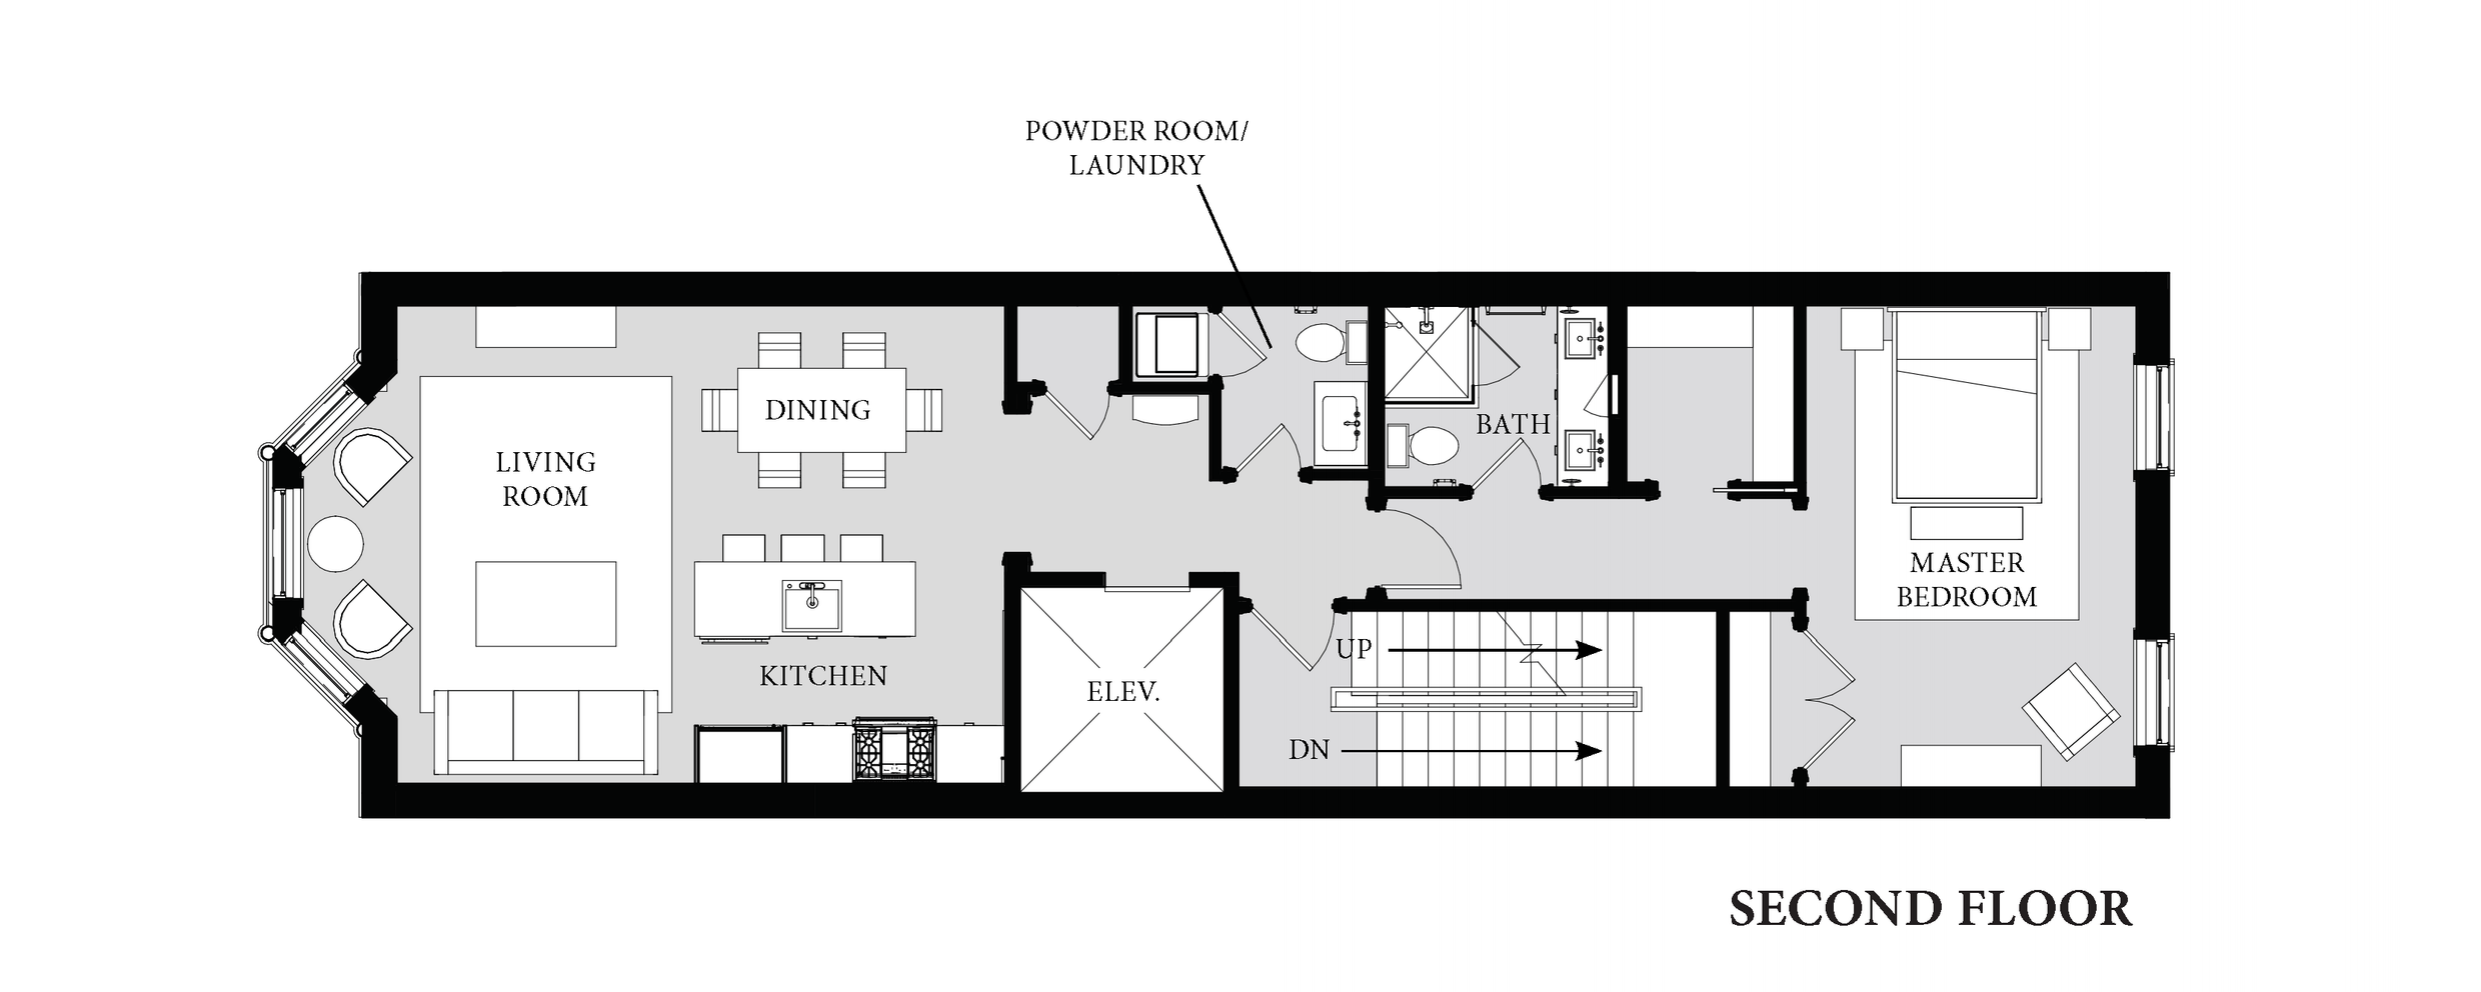 80CommAve_Final Floor Plans_High Res copy_Page_2.png